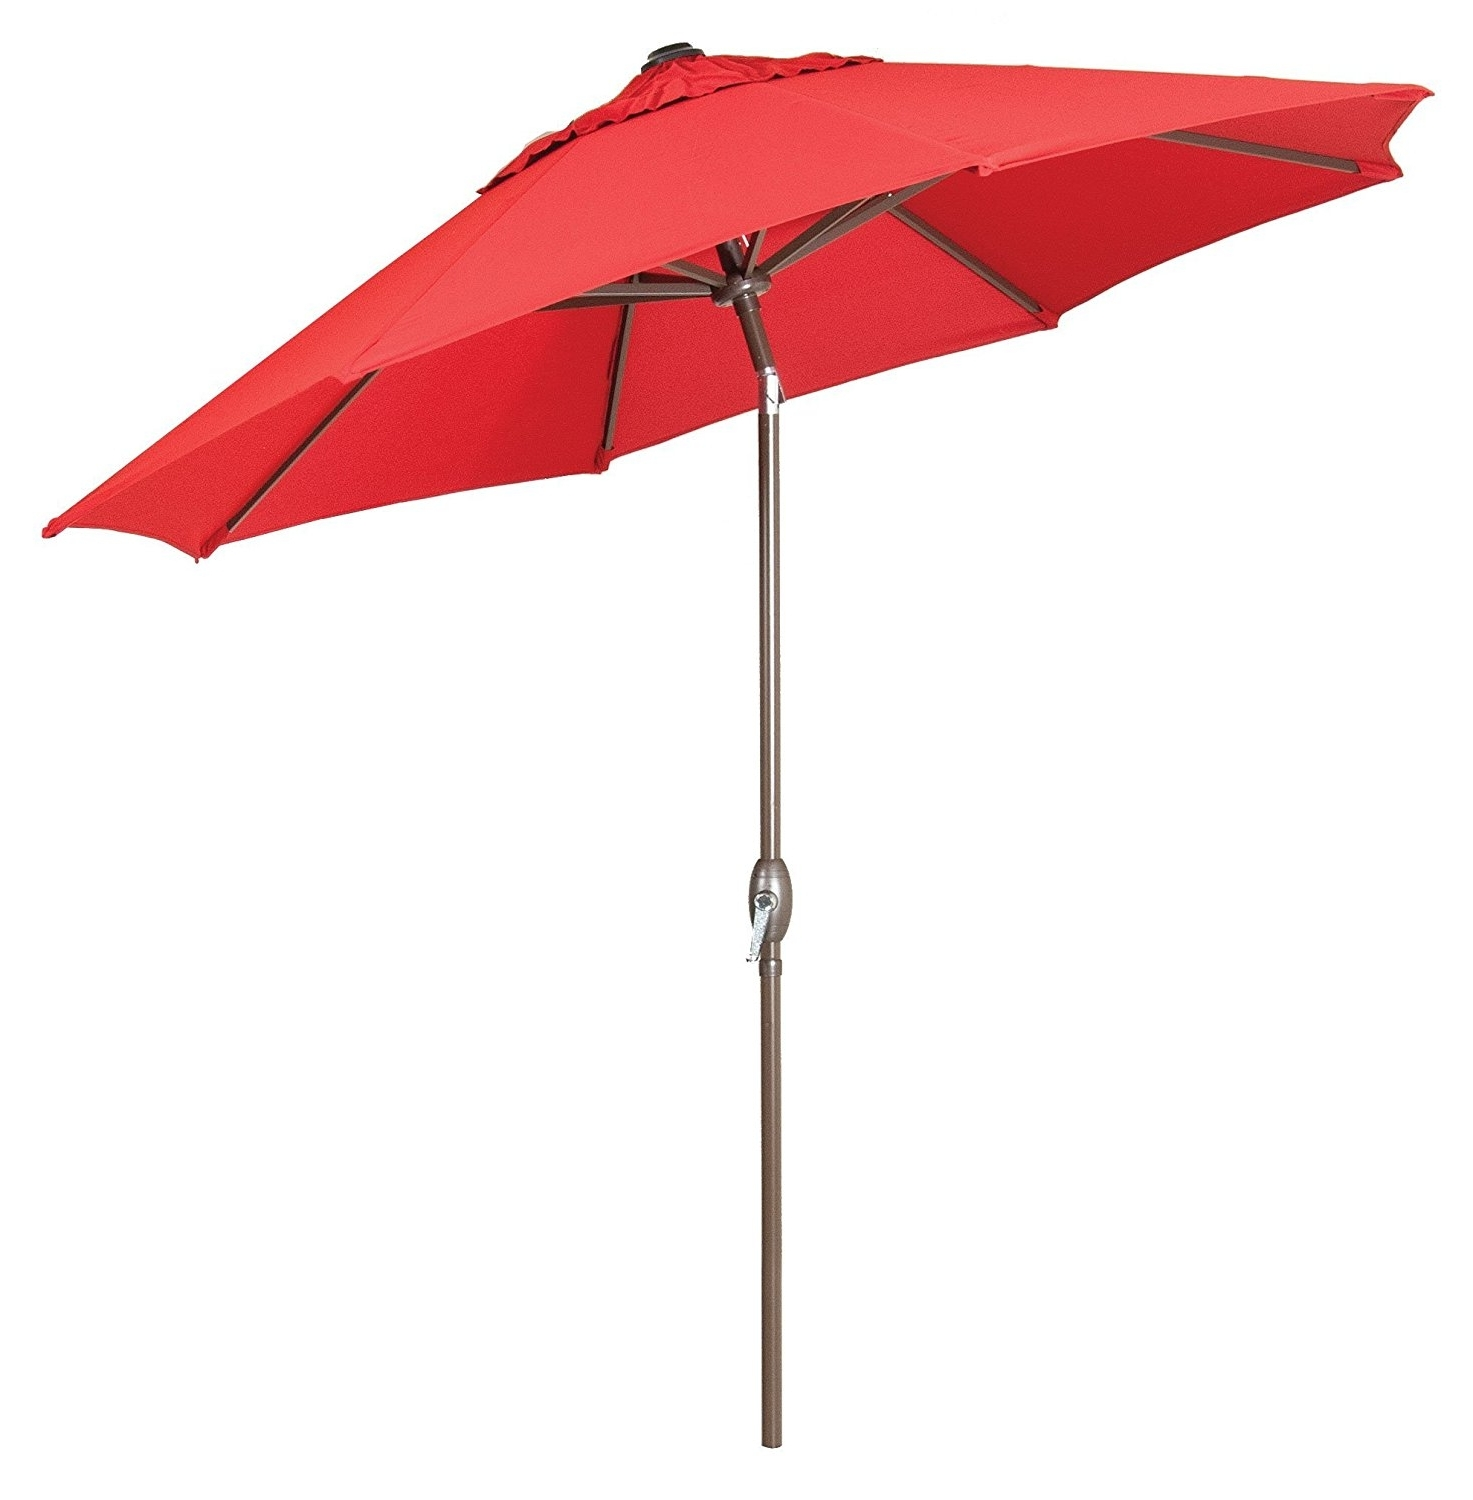 Current Premium Market Outdoor Patio Umbrella Bright Red (Crank & Tilt Intended For Red Patio Umbrellas (View 7 of 20)